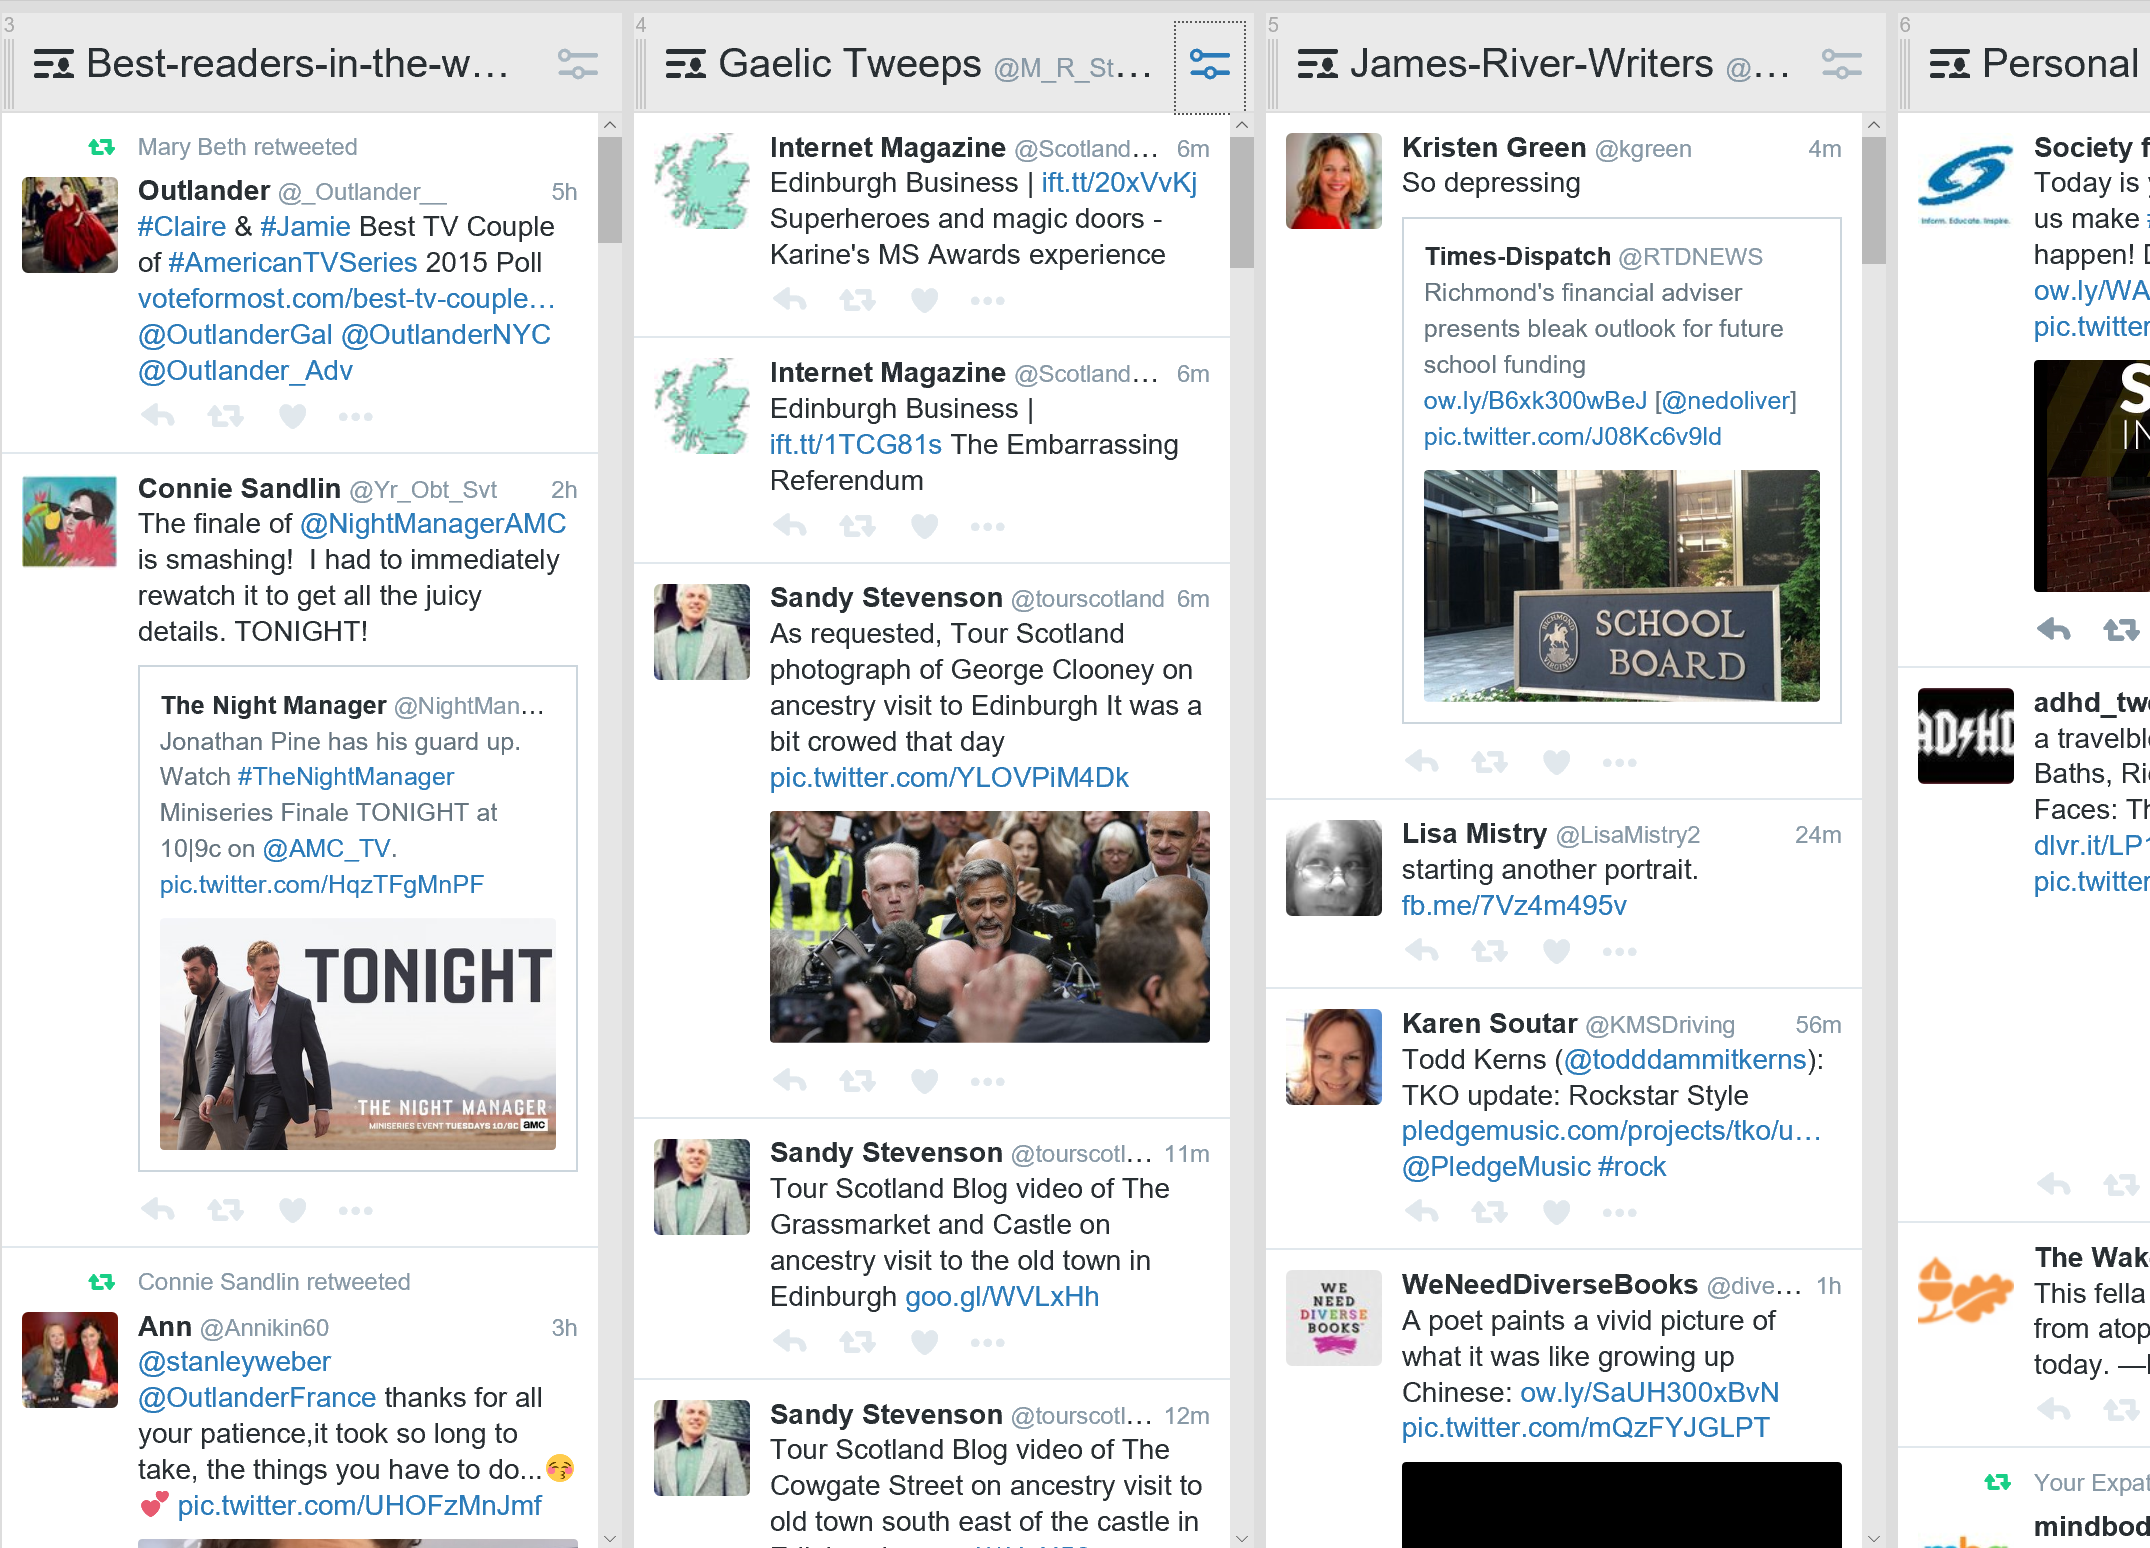 Tweetdeck lets you create columns with your lists to streamline your feed by topic.